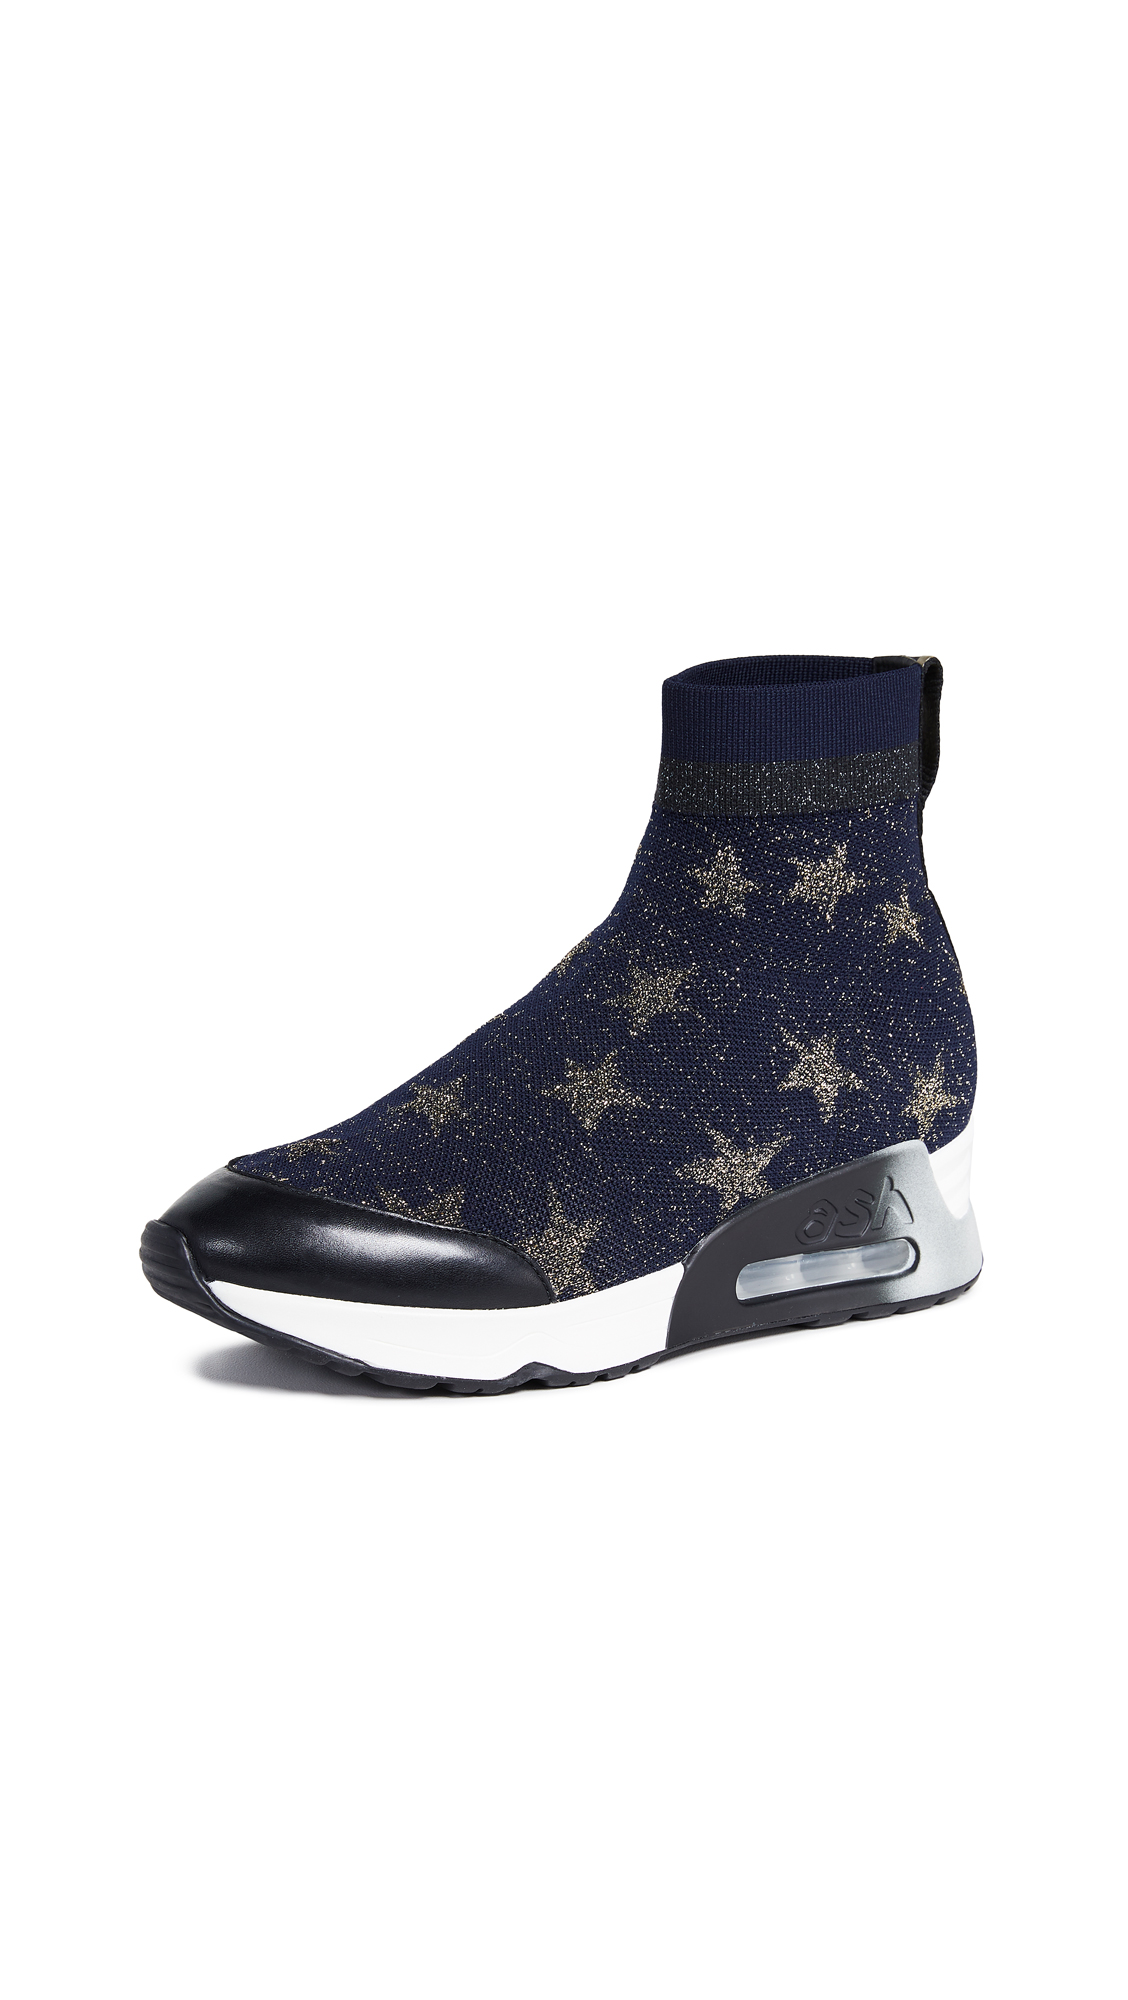 Ash Lulla Star Sneakers - Midnight/Gold/Black